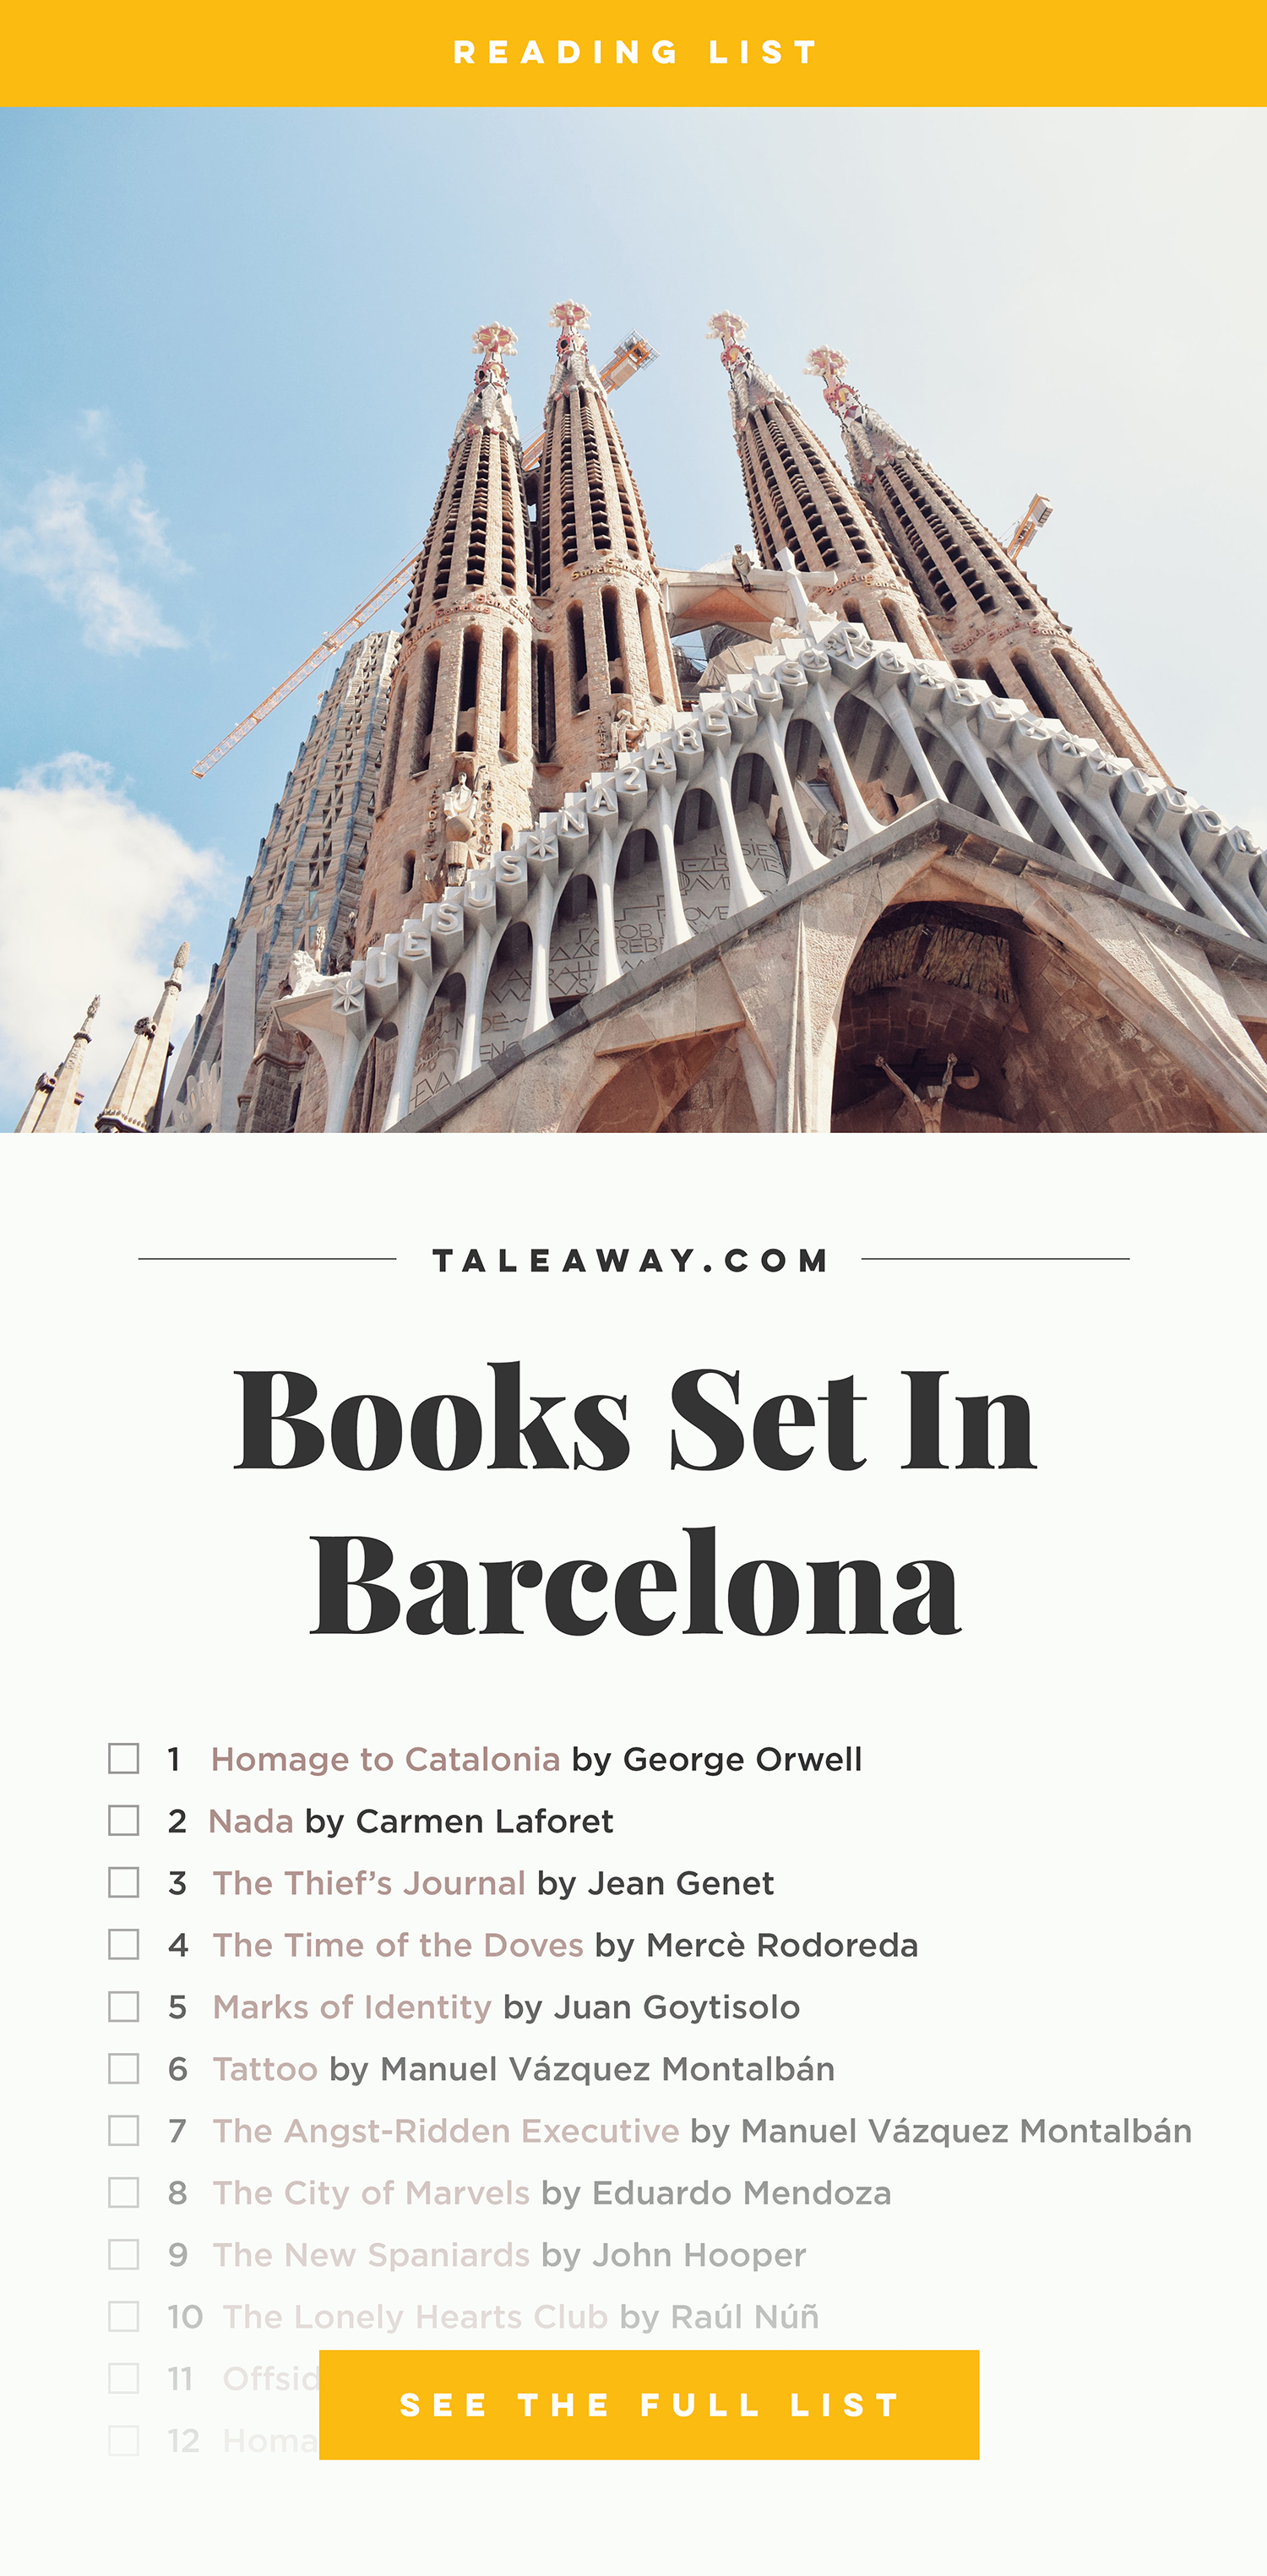 Books Set in Barcelona: barcelona books, barcelona novels, barcelona literature, barcelona fiction, barcelona authors, best books set in barcelona, spain books, popular books set in barcelona, books about barcelona, barcelona reading challenge, barcelona reading list, barcelona travel, barcelona history, barcelona travel books, barcelona packing, barcelona books to read, books to read before going to barcelona, novels set in barcelona, books to read about barcelona